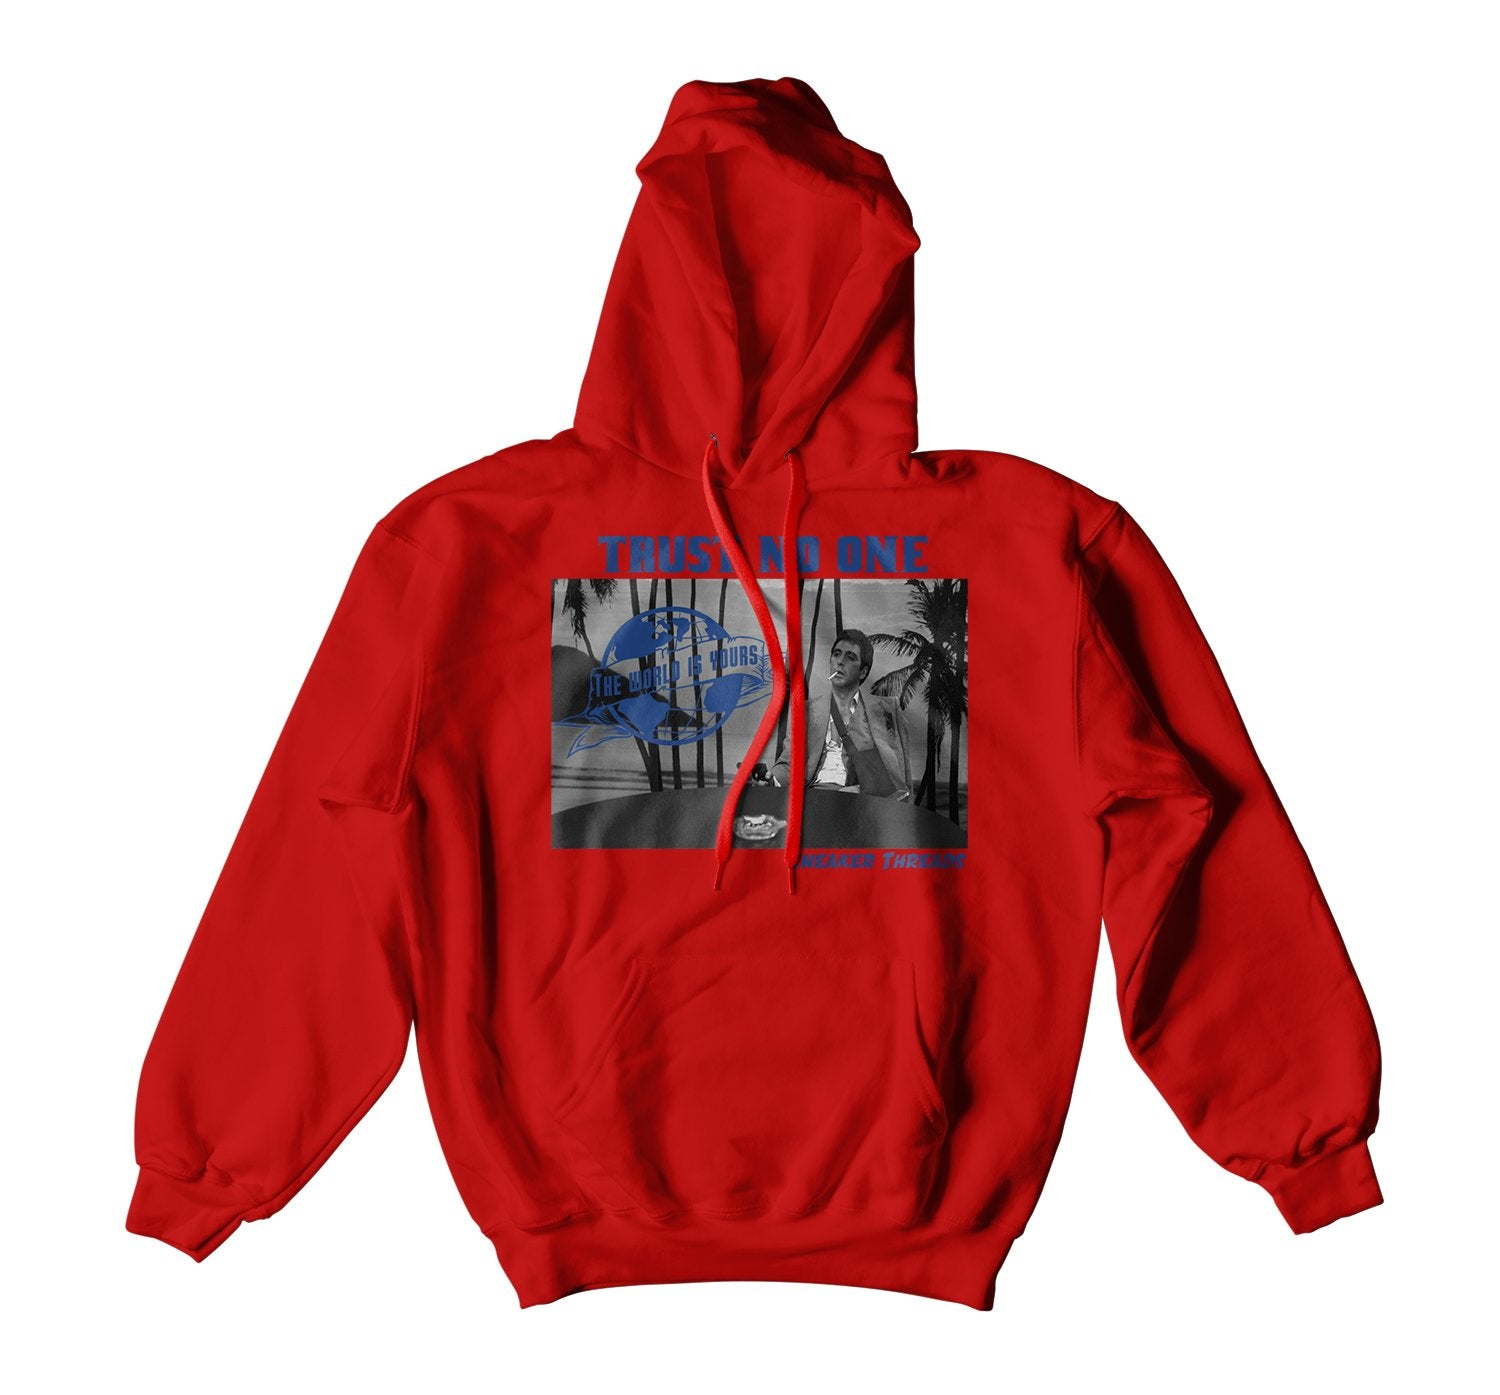 hoodie collection for men designed to match the Jordan 4 loyal blue sneakers